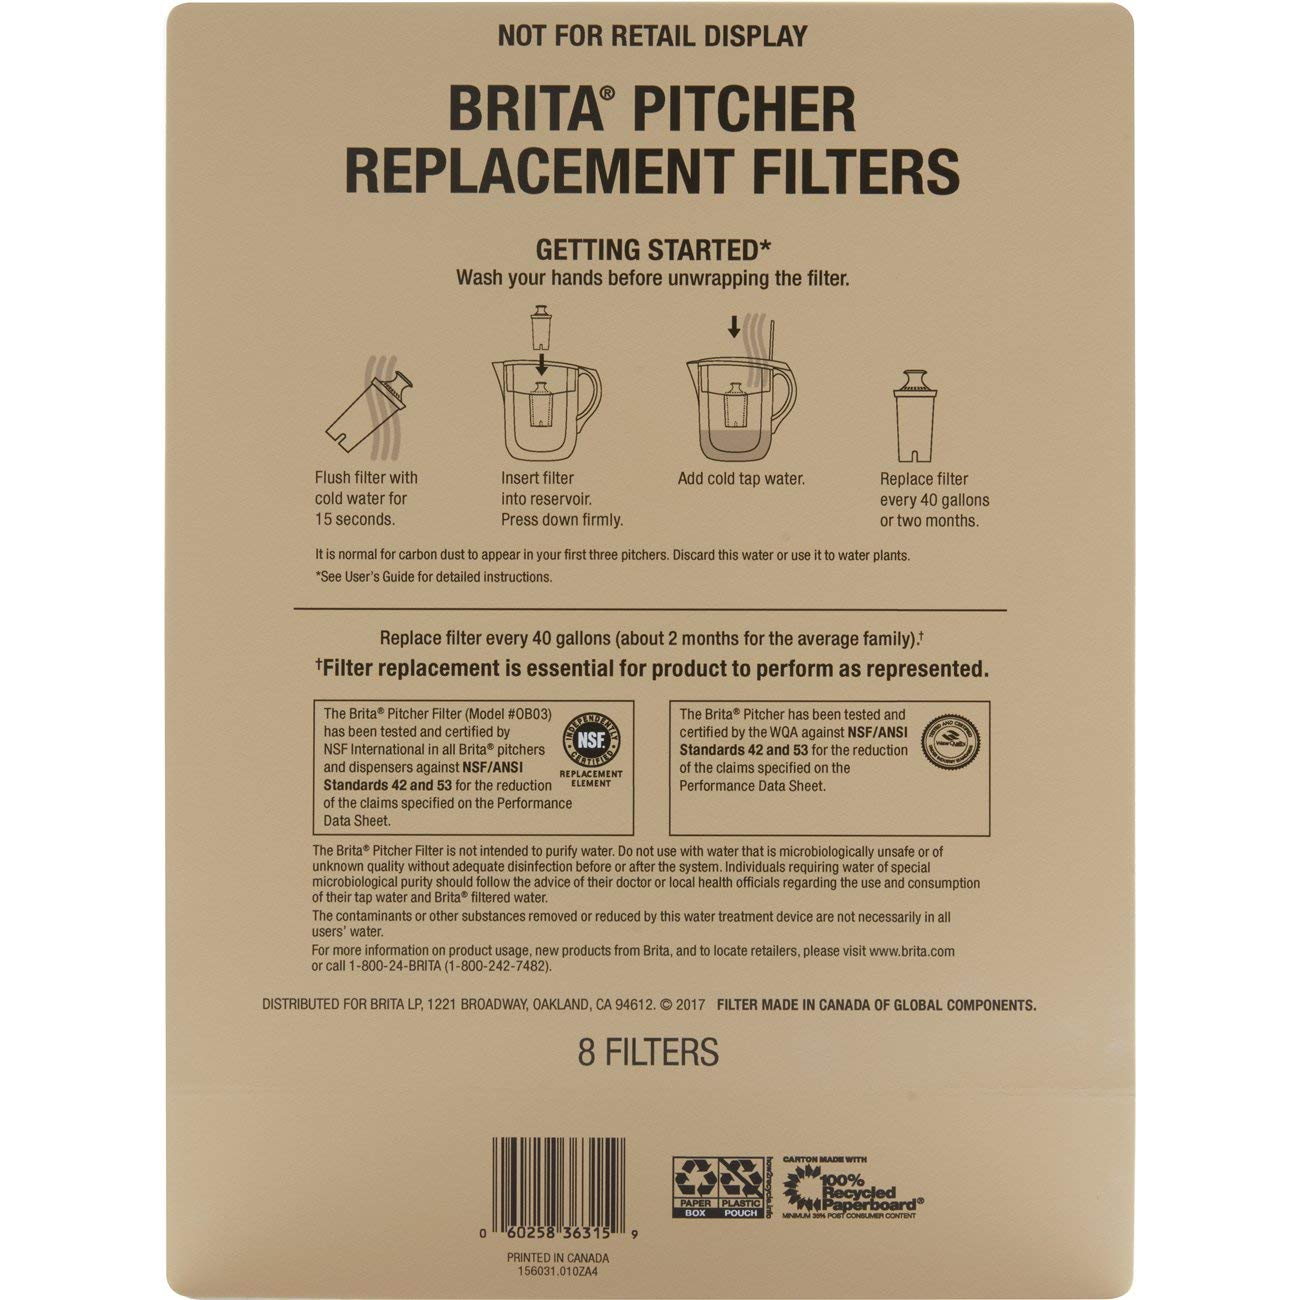 Brita Standard Water Filter, Standard Replacement Filters for Pitchers and Dispensers, BPA Free - 8 Count by Brita (Image #7)